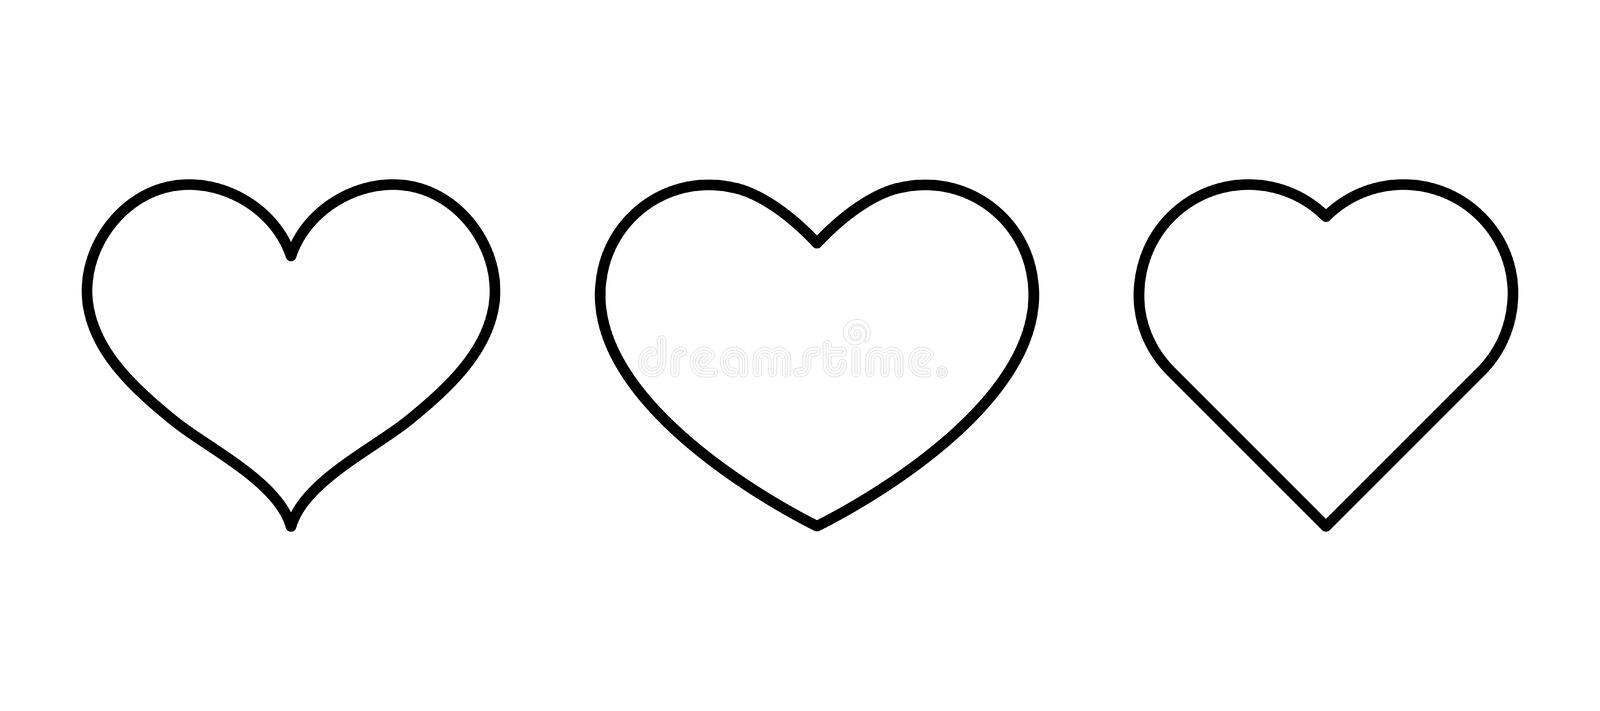 Heart outline black icon on a white background. Symbol of love. Icon for your site or advertising. Vector illustration royalty free illustration